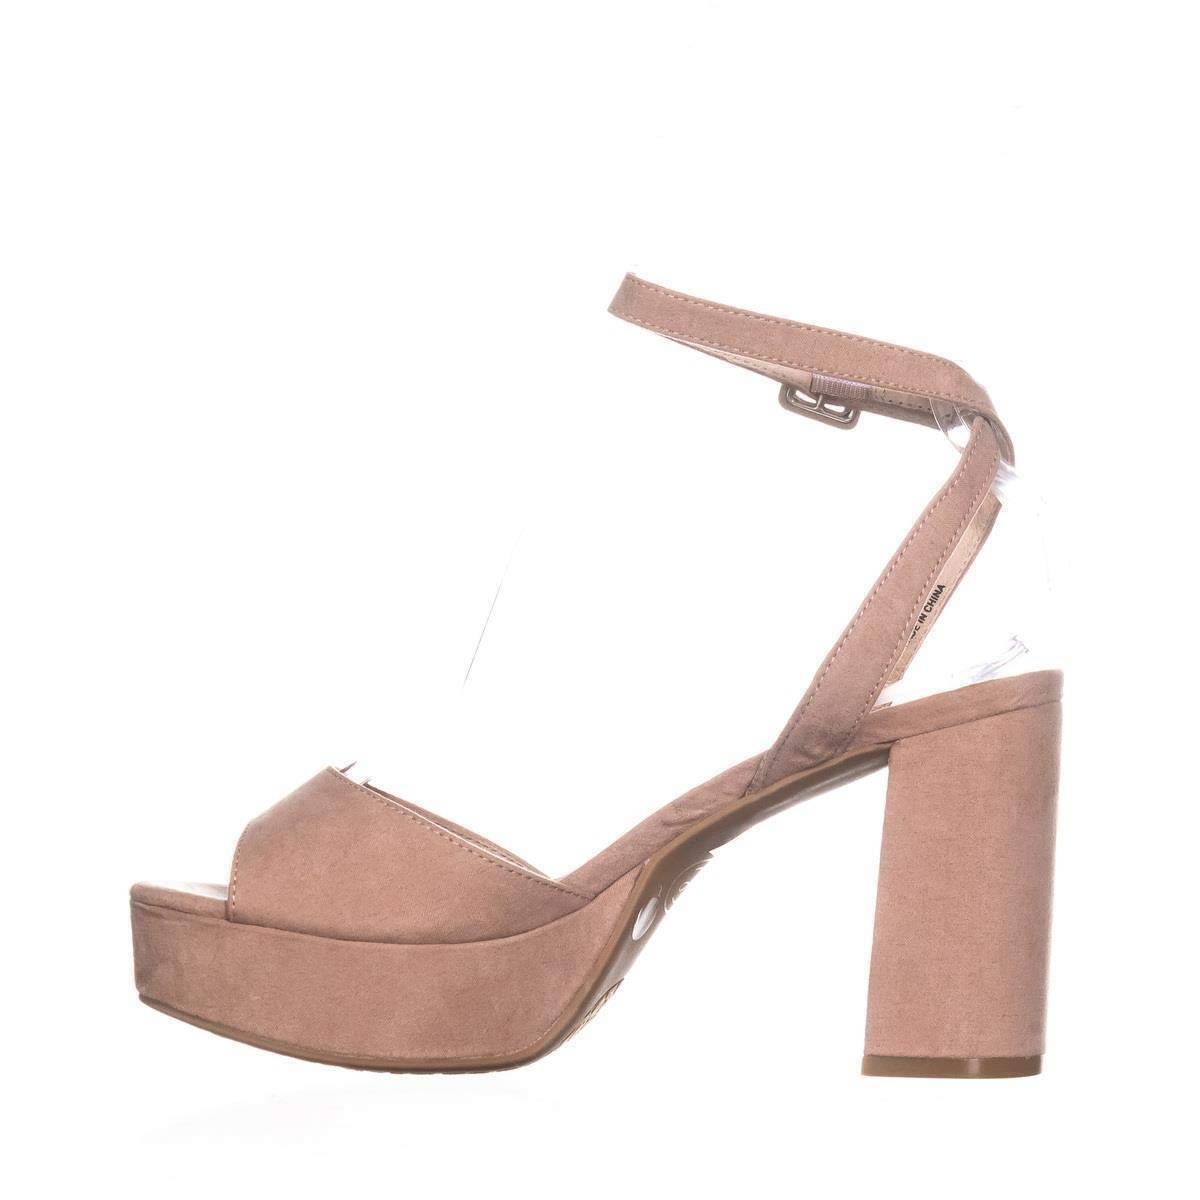 9809b72098 Amazon.com | Chinese Laundry Womens Trixi Open Toe Casual Ankle Strap  Sandals | Heeled Sandals